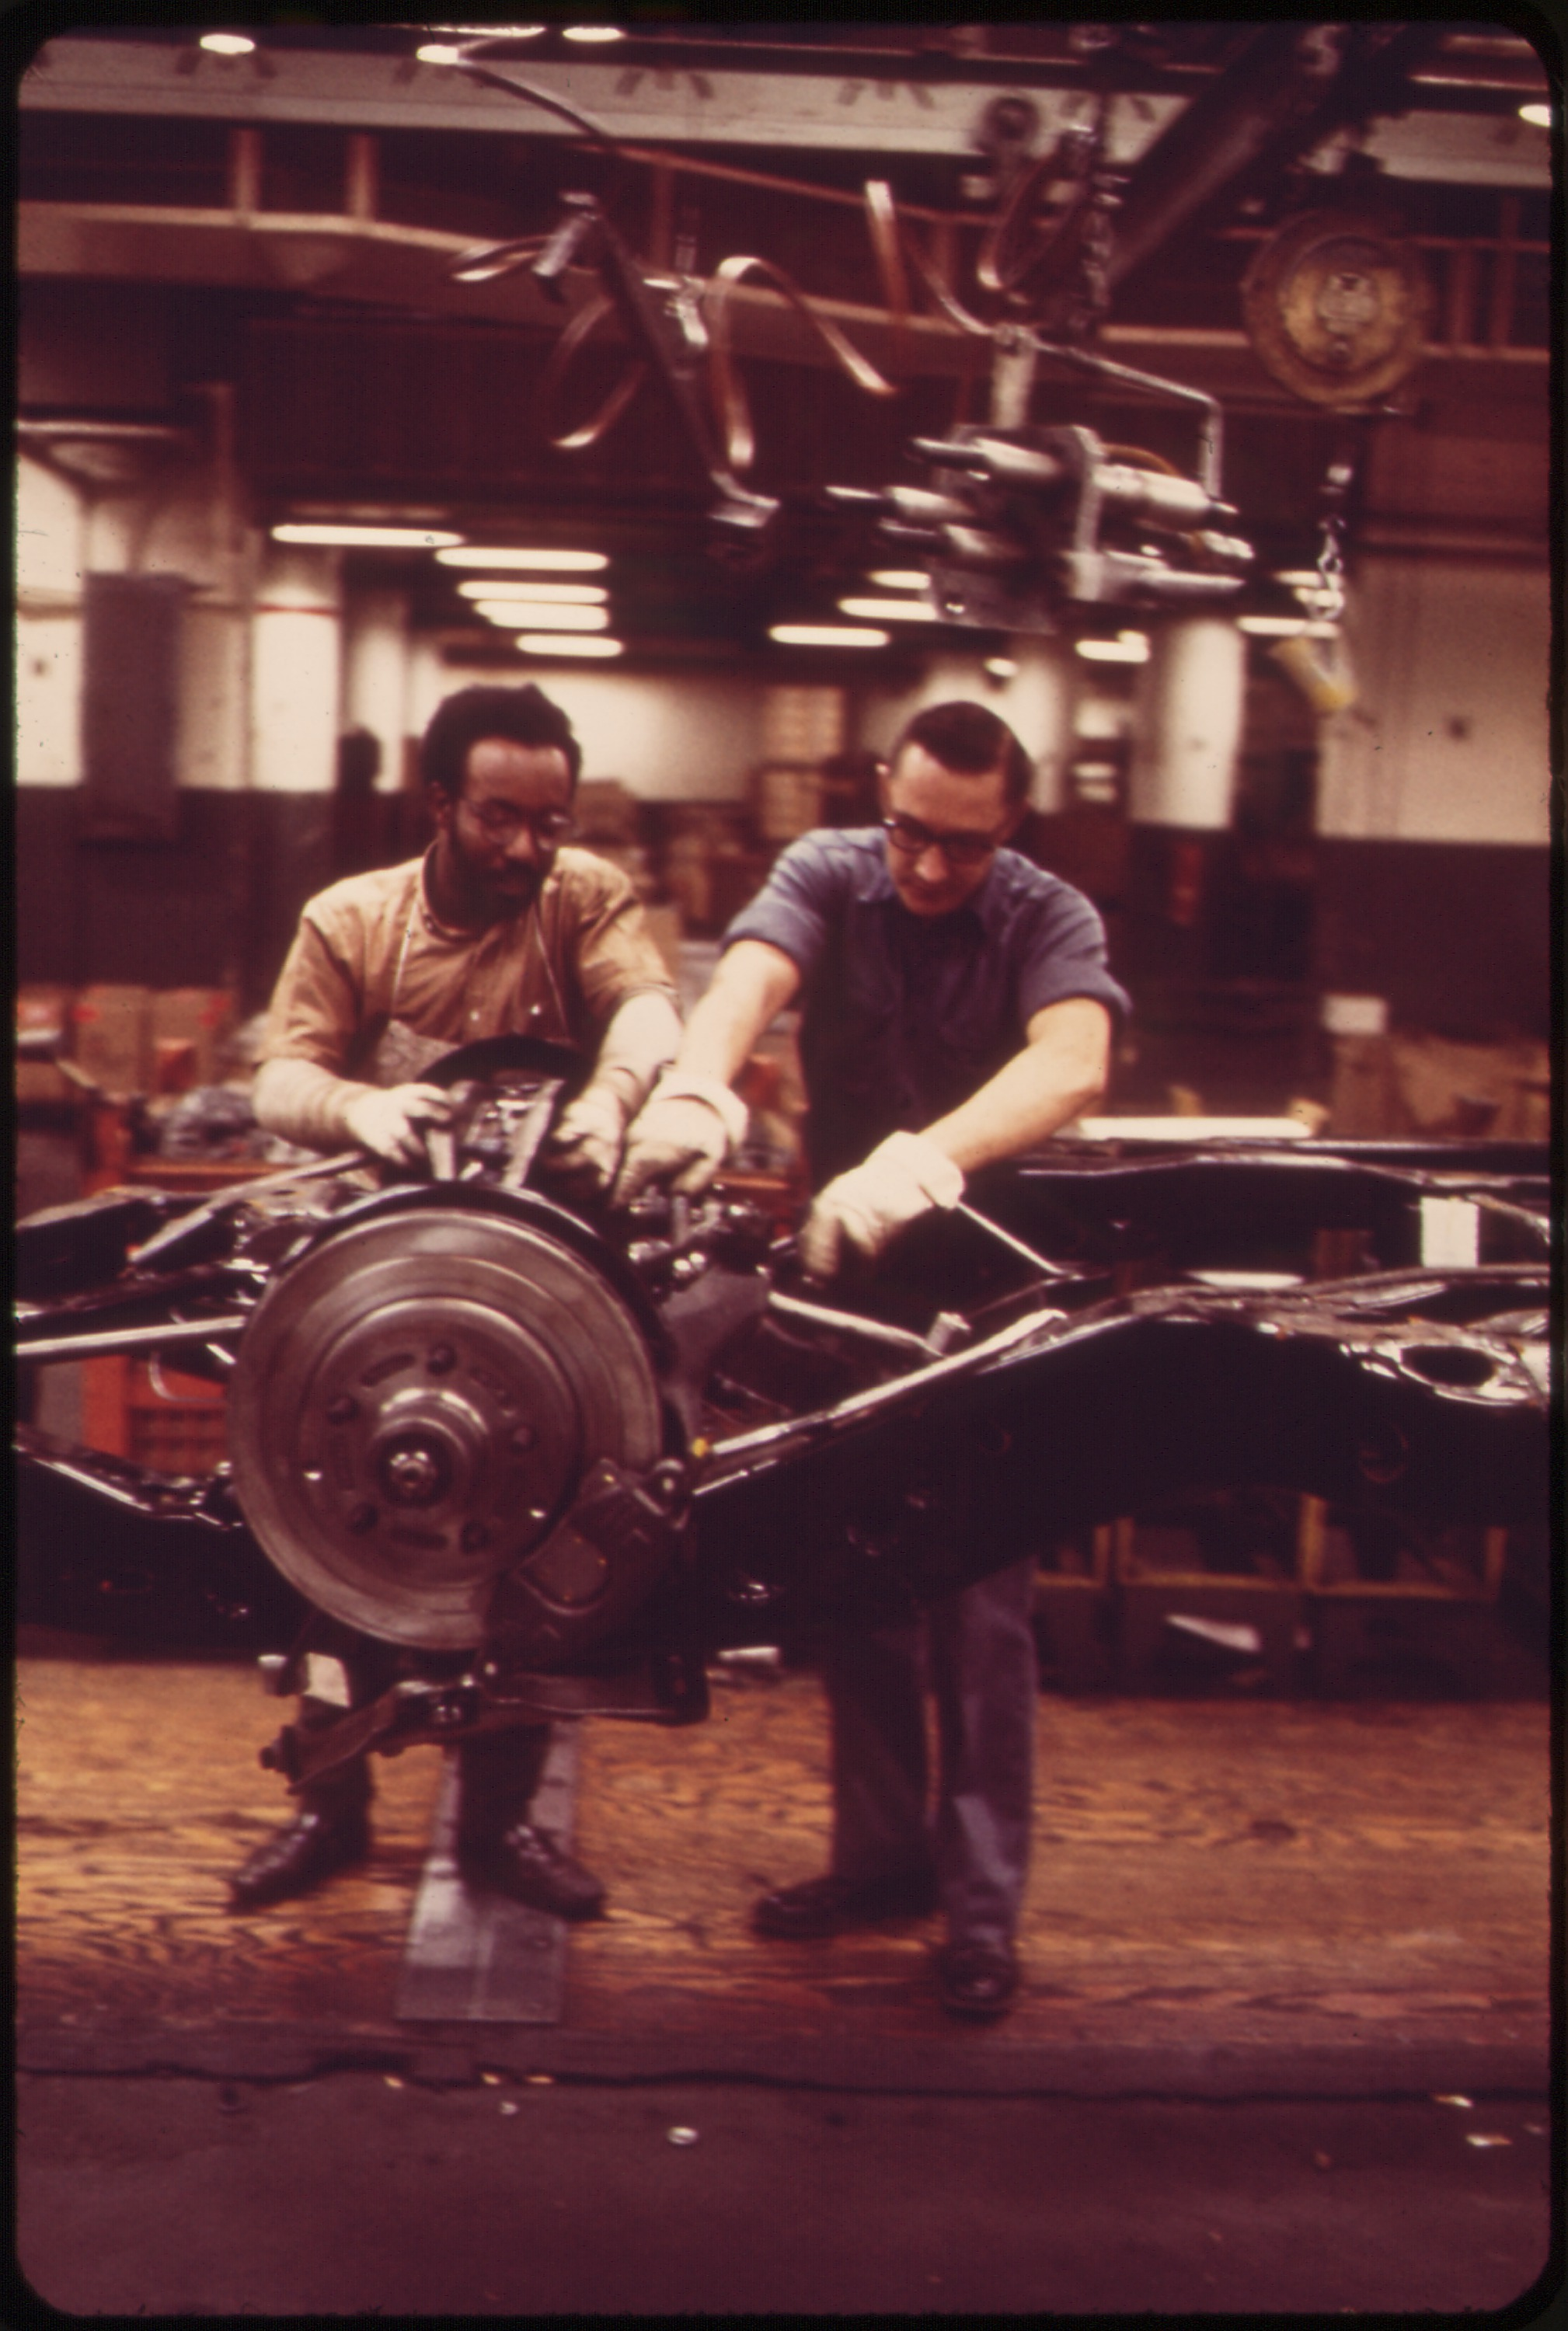 ON_THE_CADILLAC_ASSEMBLY_LINE-ATTACHING_